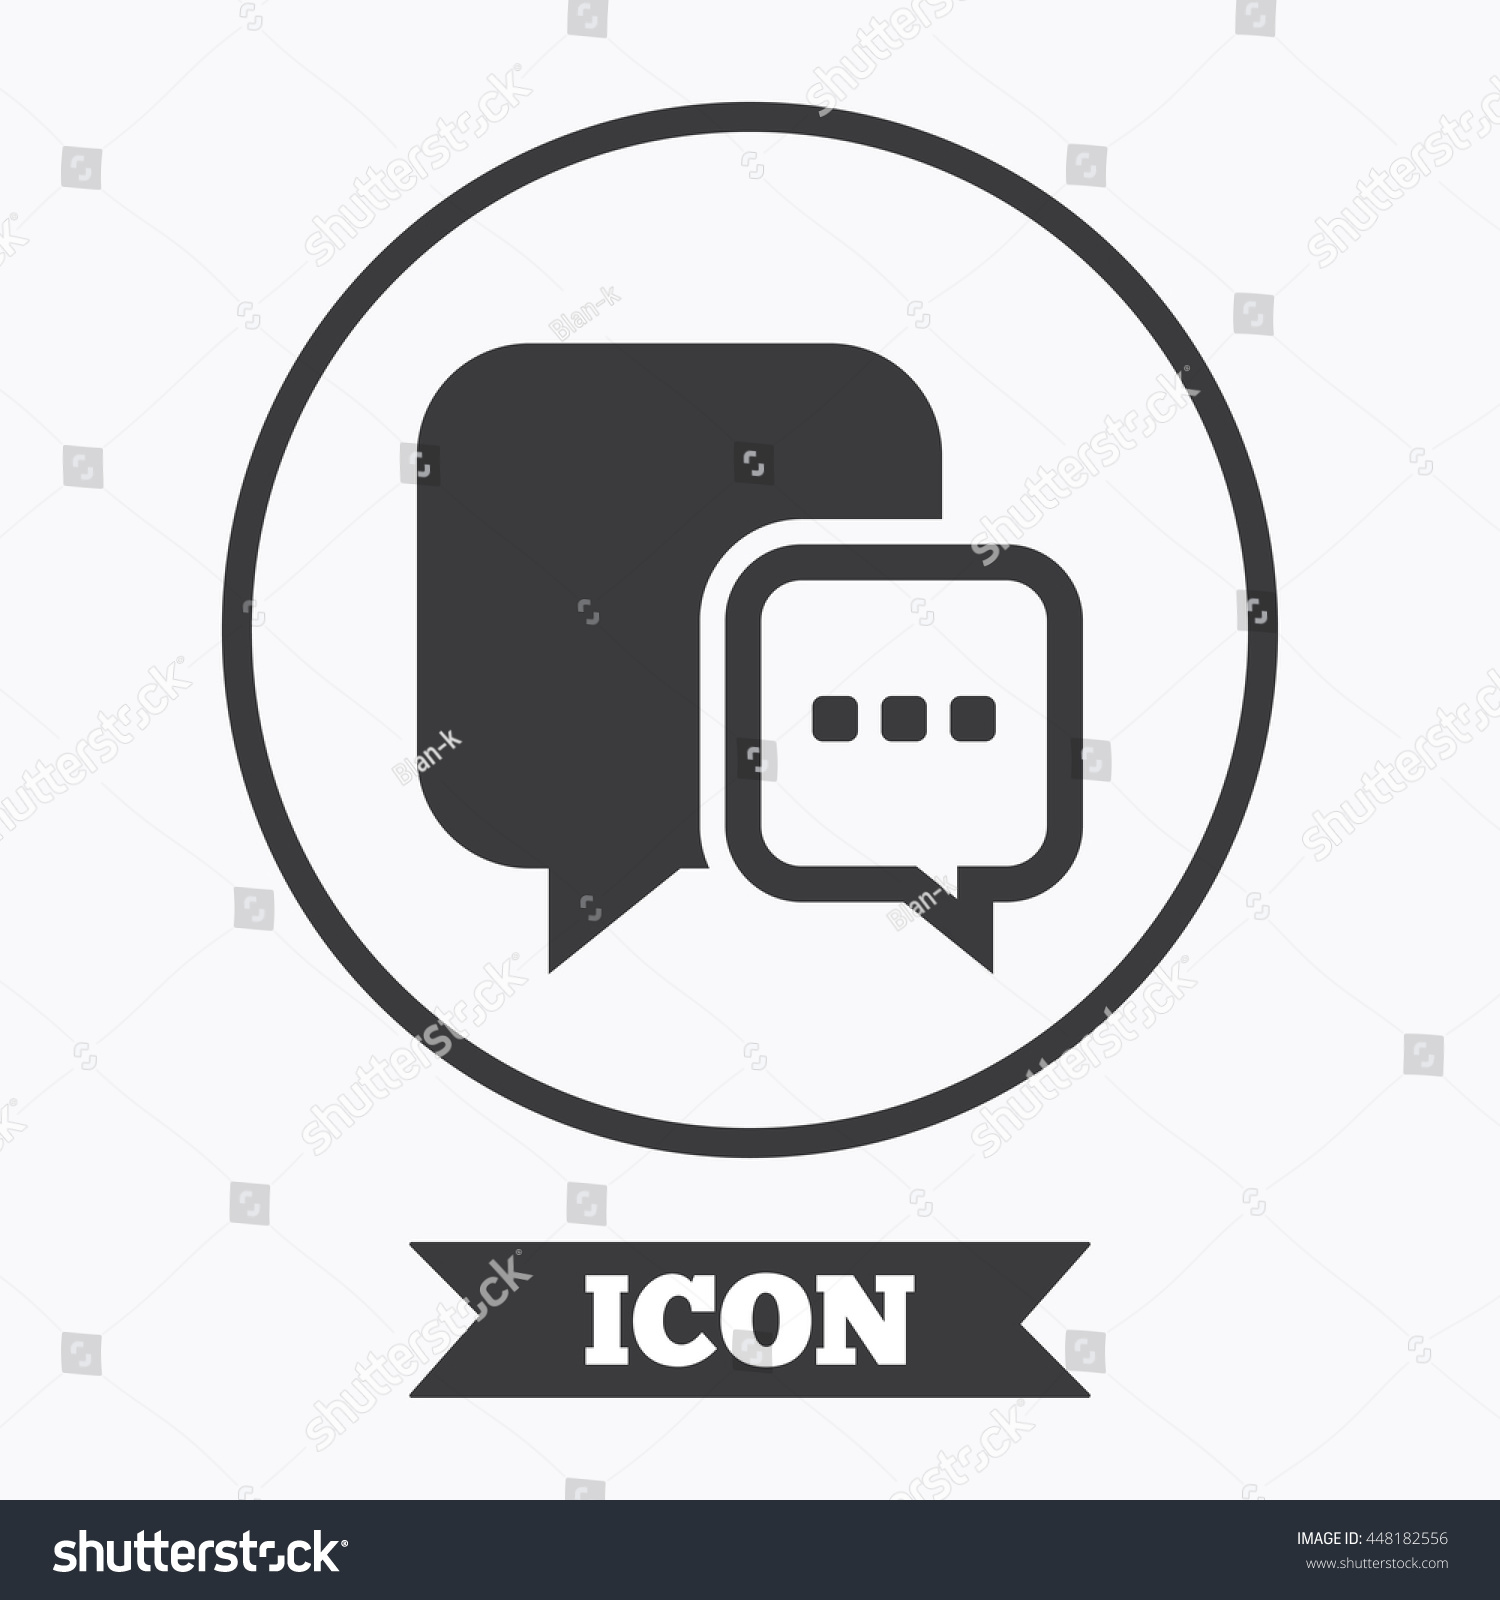 Chat sign icon speech bubble three stock vector 448182556 speech bubble with three dots symbol communication chat bubble graphic biocorpaavc